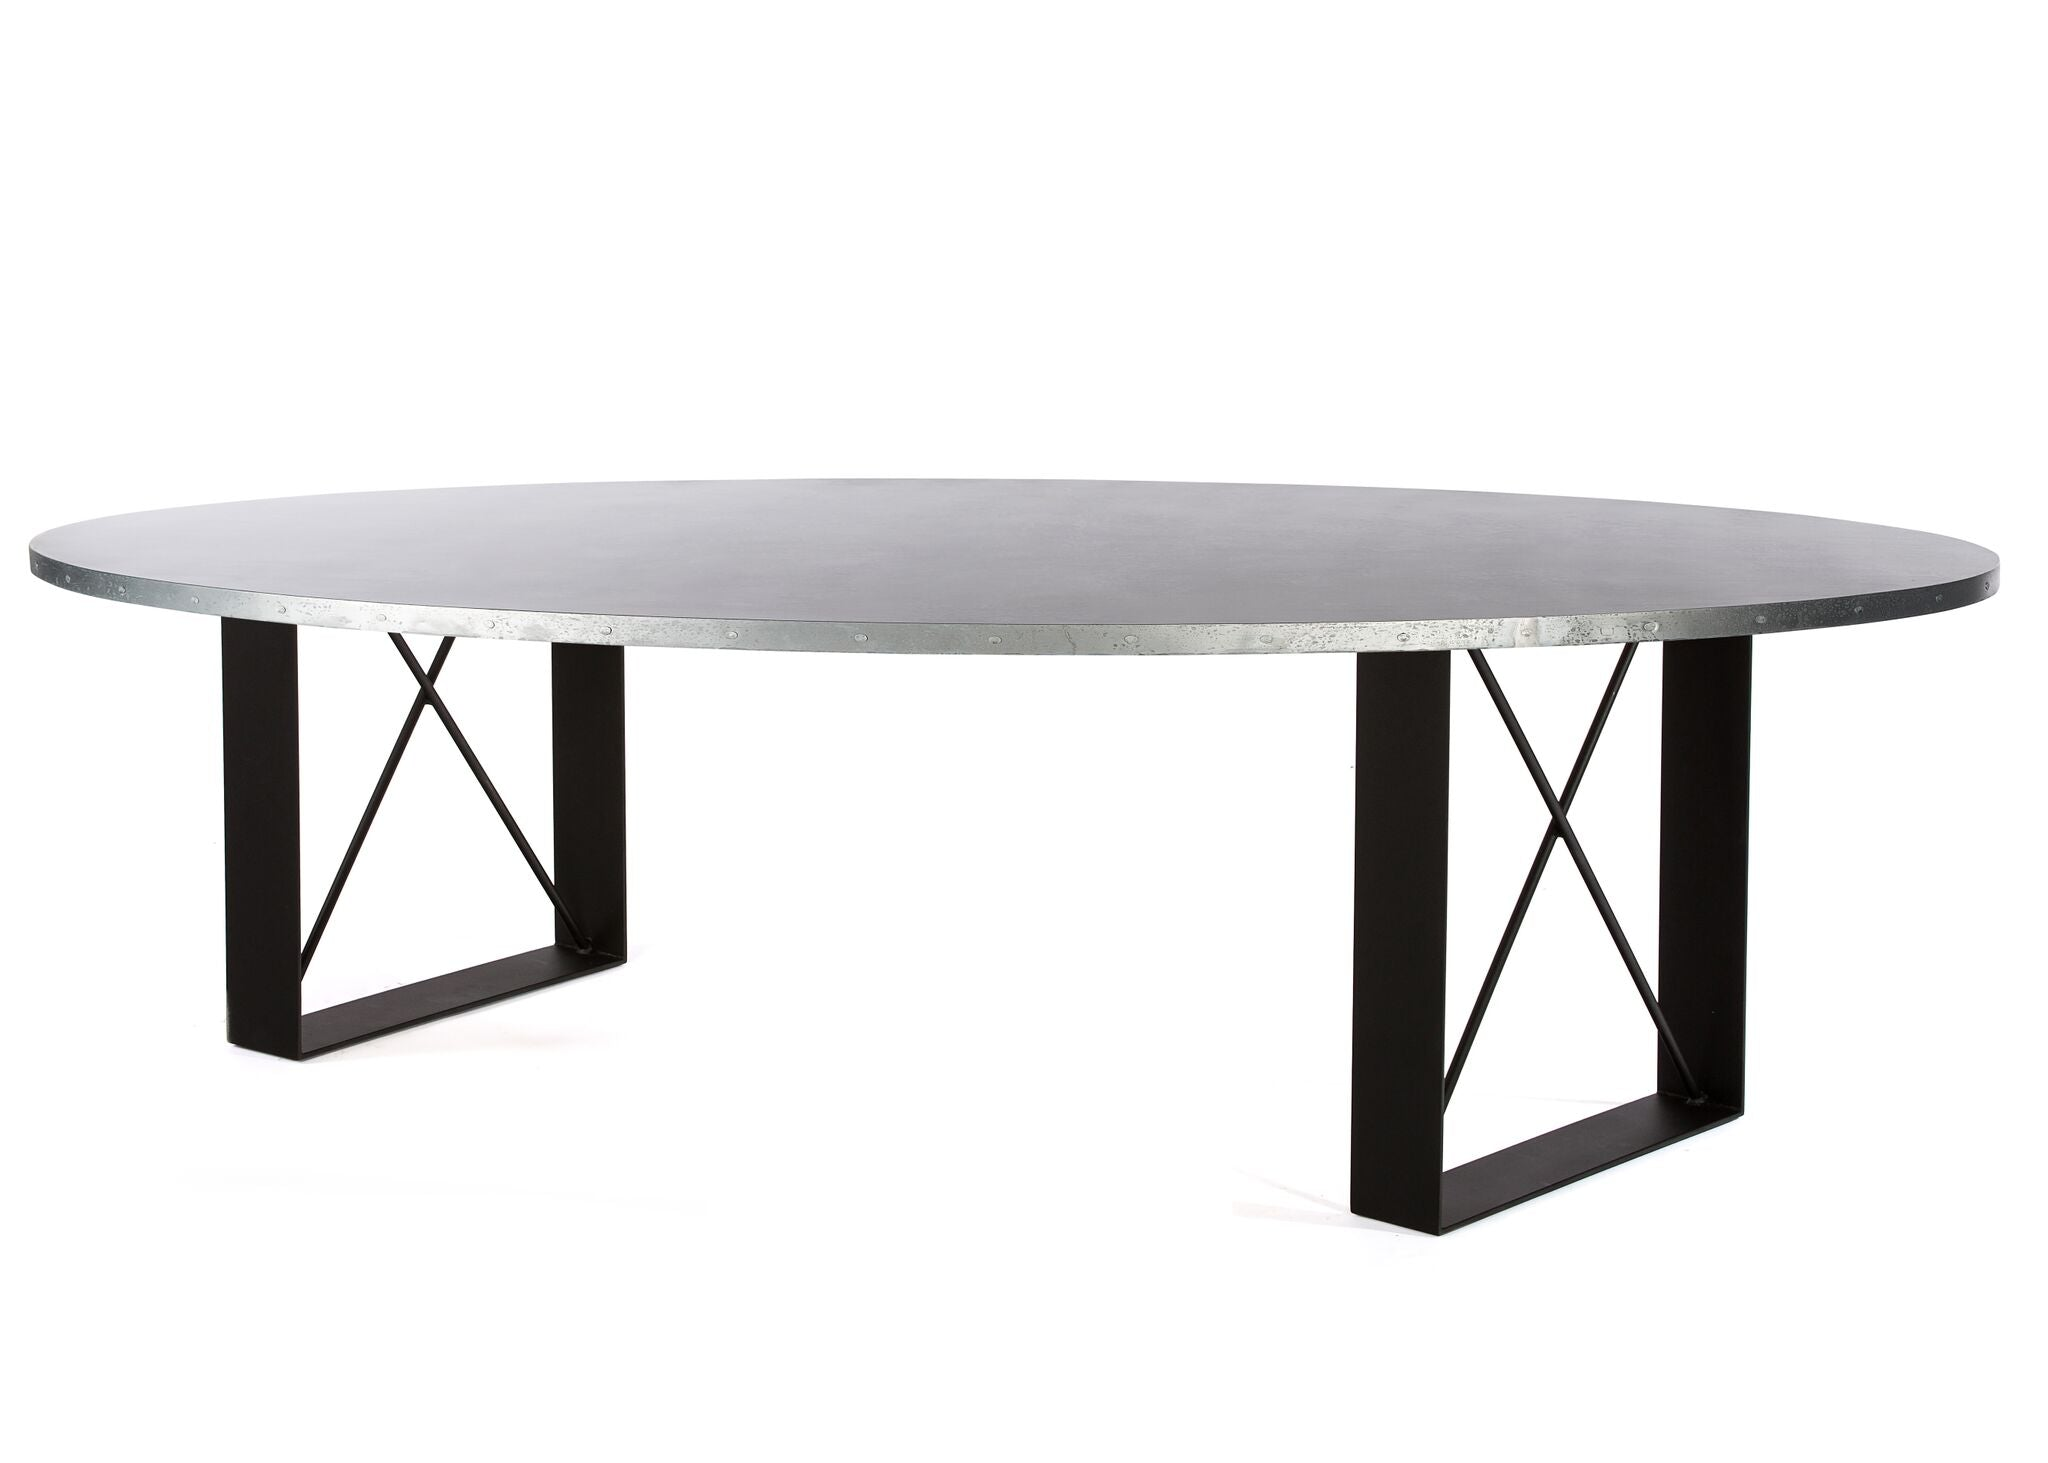 "Zinc Oval Tables | Soho Table | CLASSIC | Black on Steel | 72""L 39""W 30""H 